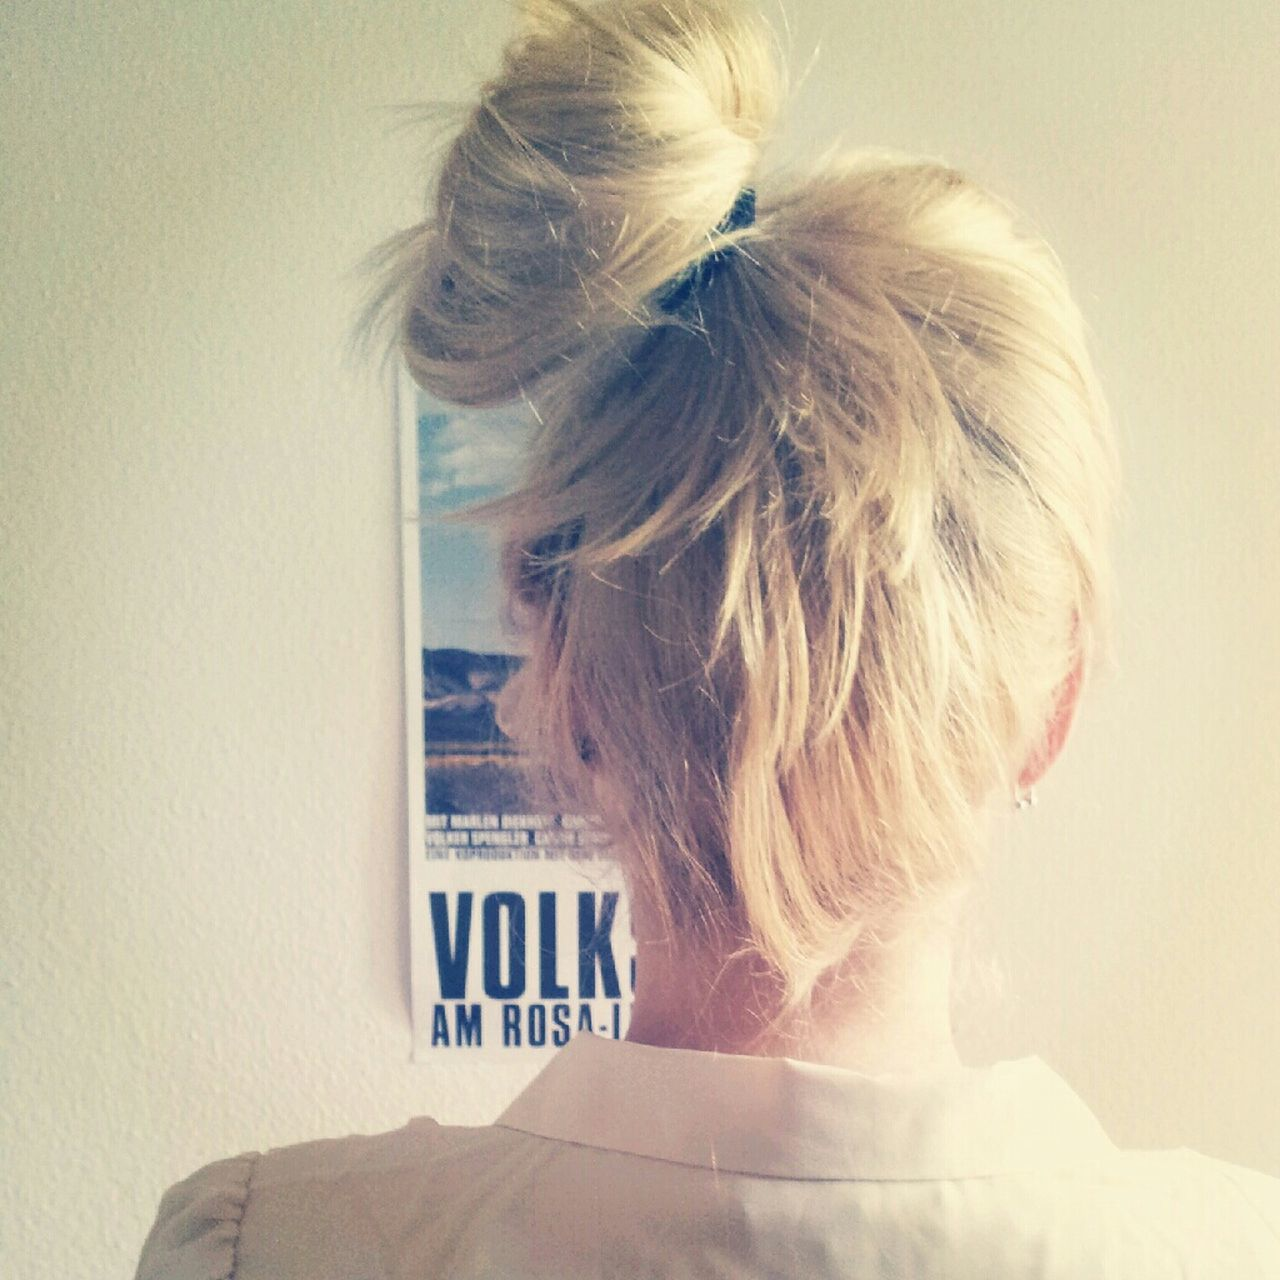 blond hair, one person, rear view, real people, indoors, young adult, women, headshot, lifestyles, young women, close-up, day, adult, people